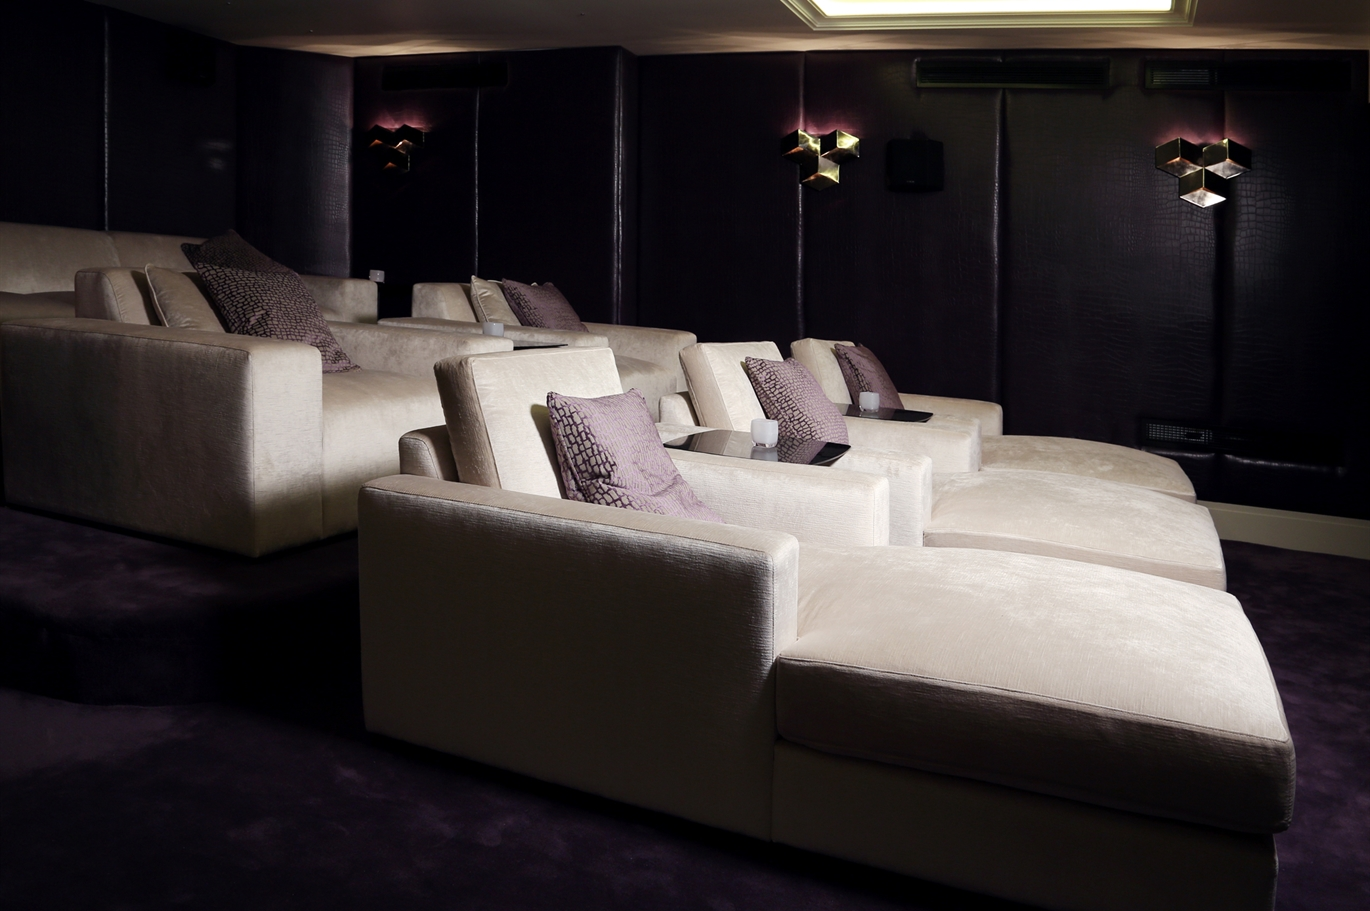 Cinema Room; Cinema Room; Cinema Room ...